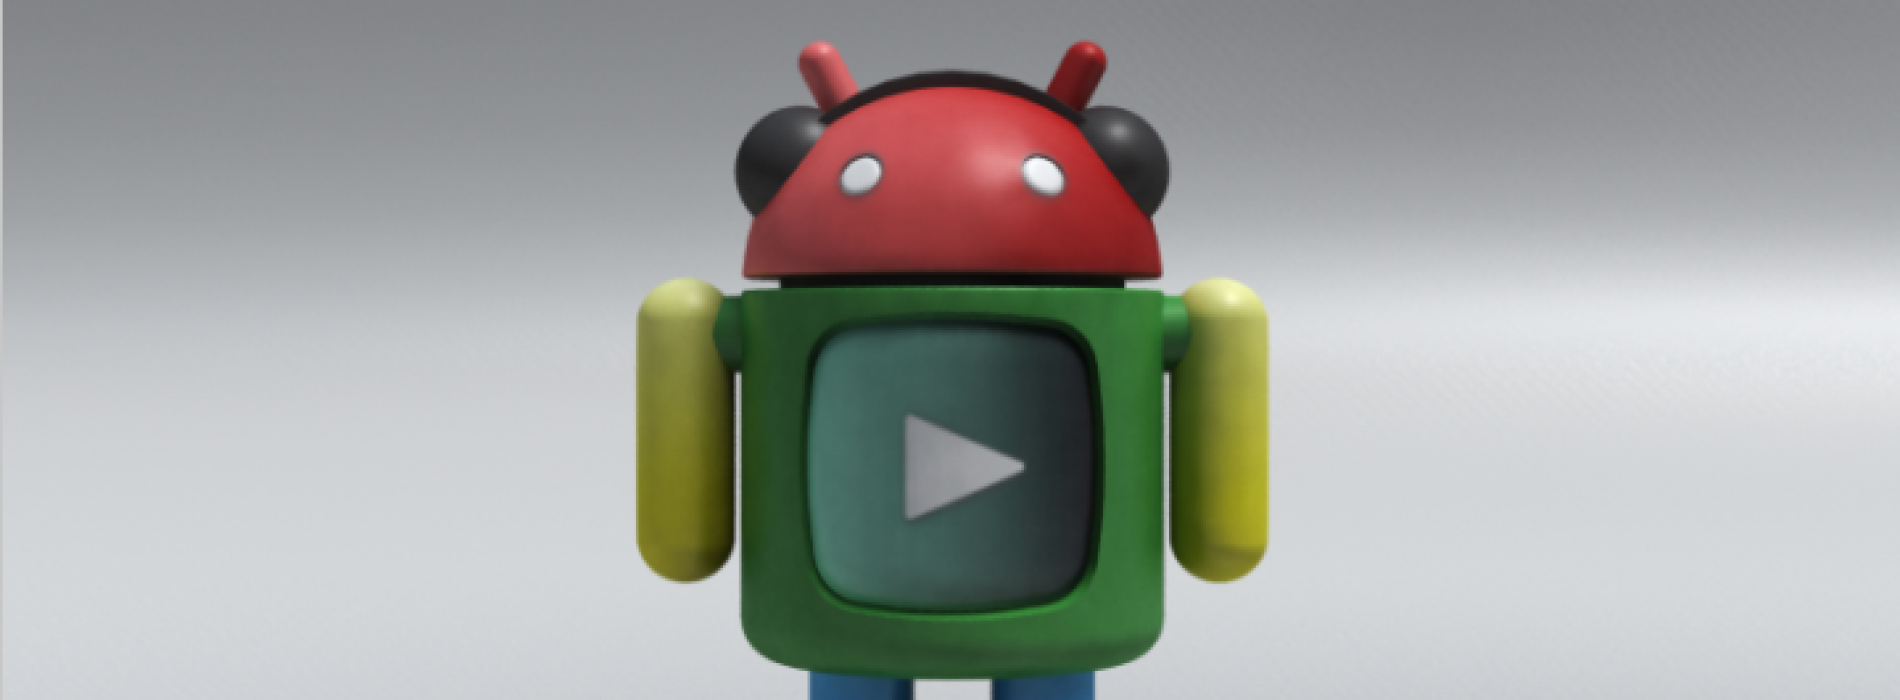 Cubify intros two dozen 3D-printed Bugdroid collectibles